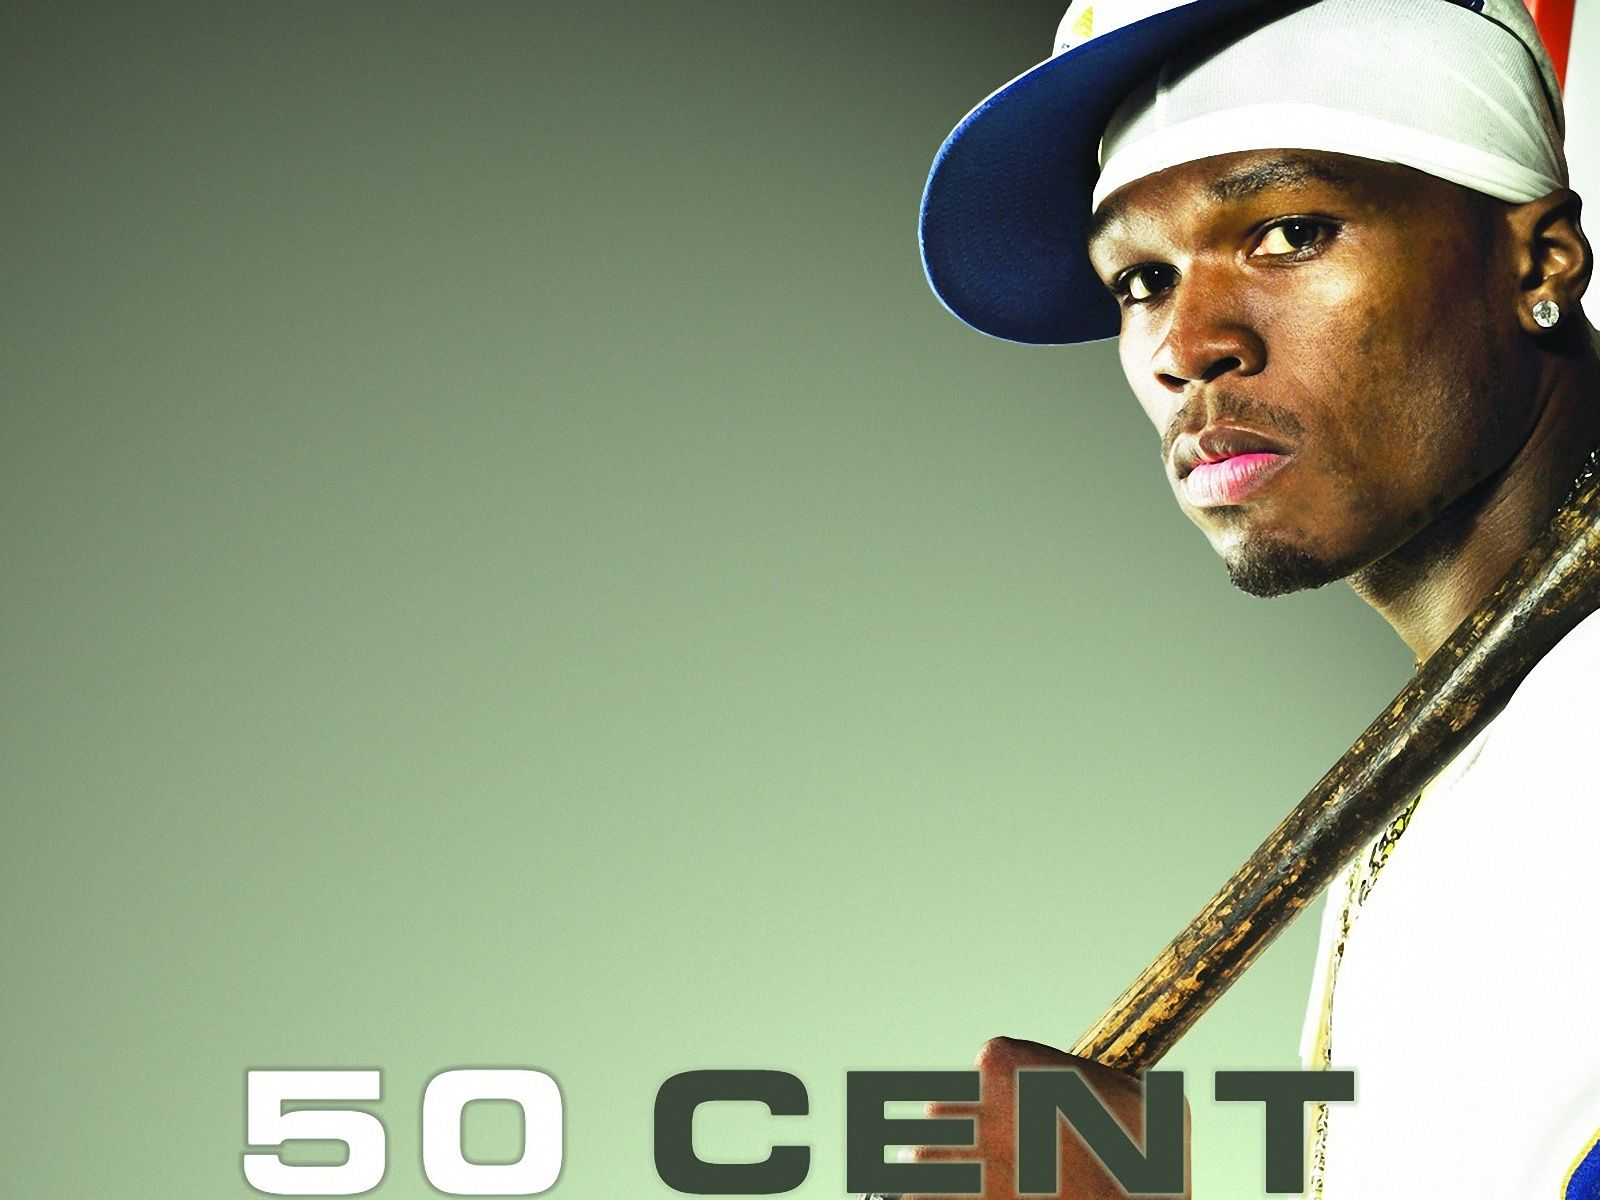 50 Cent Wallpapers Top Free 50 Cent Backgrounds Wallpaperaccess